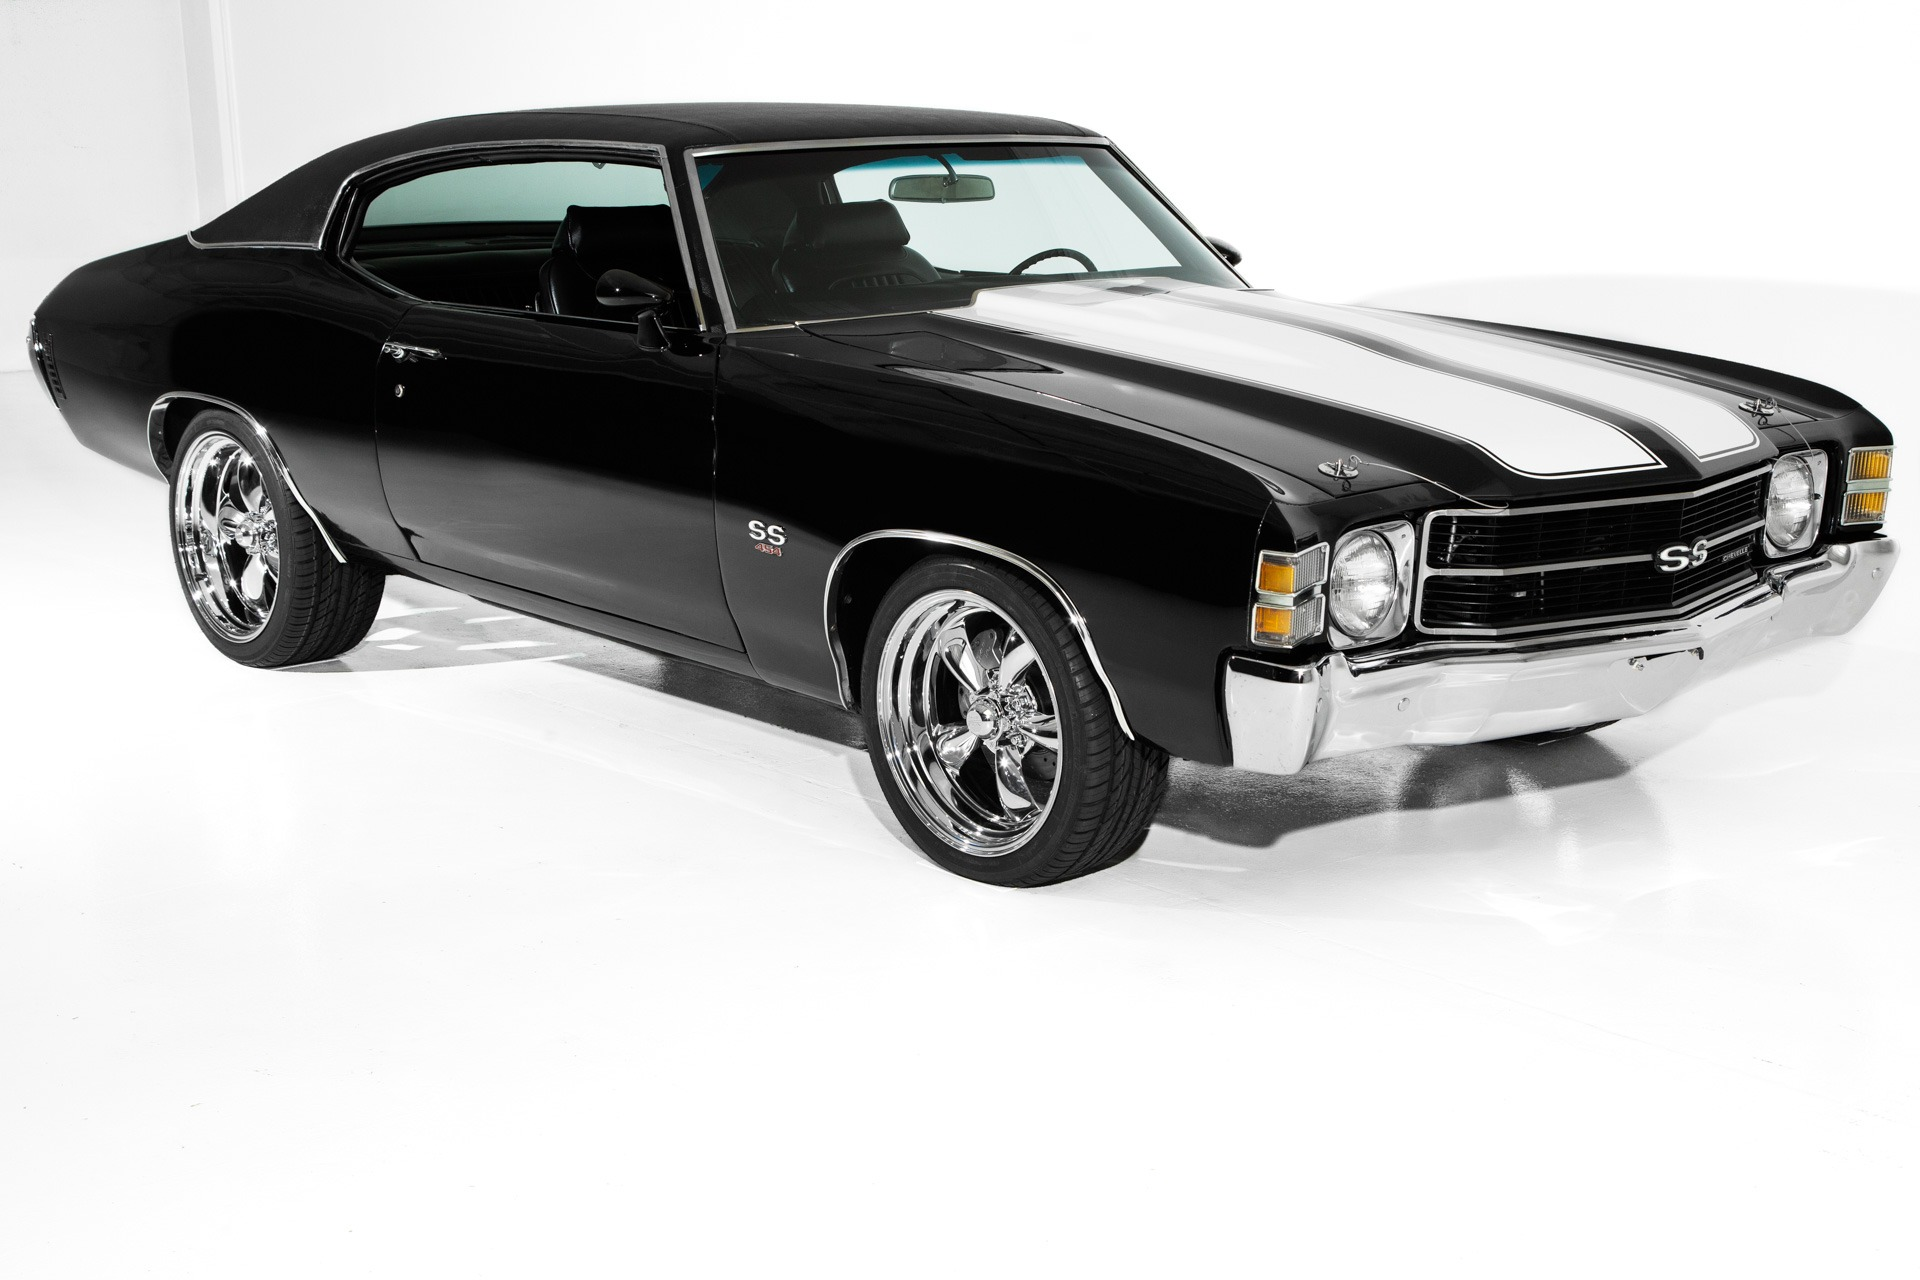 1971 Chevrolet Chevelle Triple Black 454 4 Spd Ac